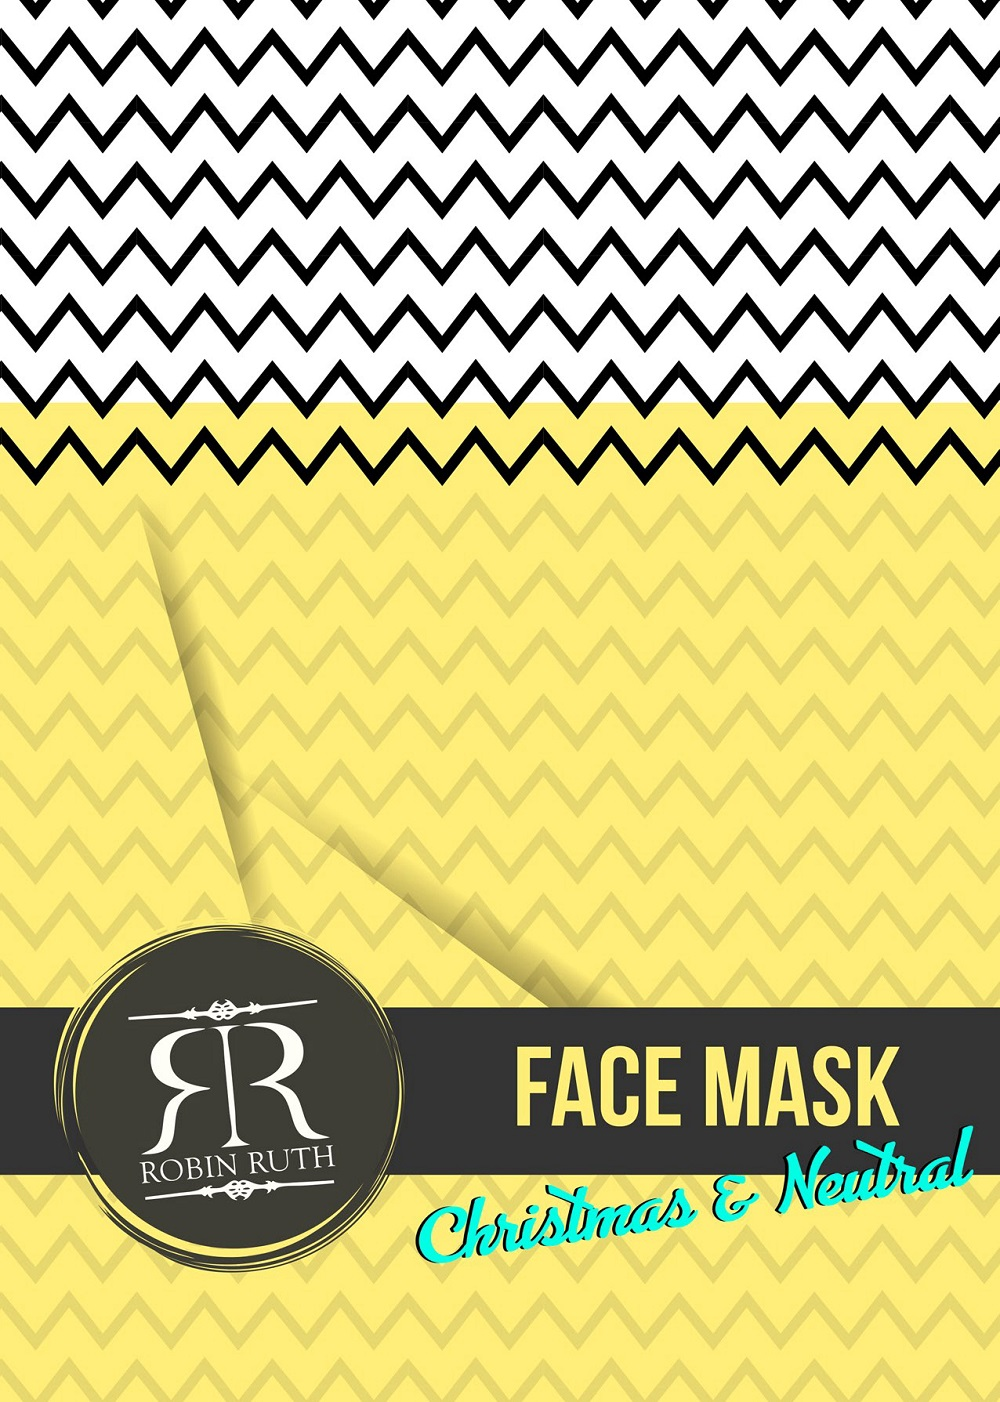 robin ruth face mask christmas logo